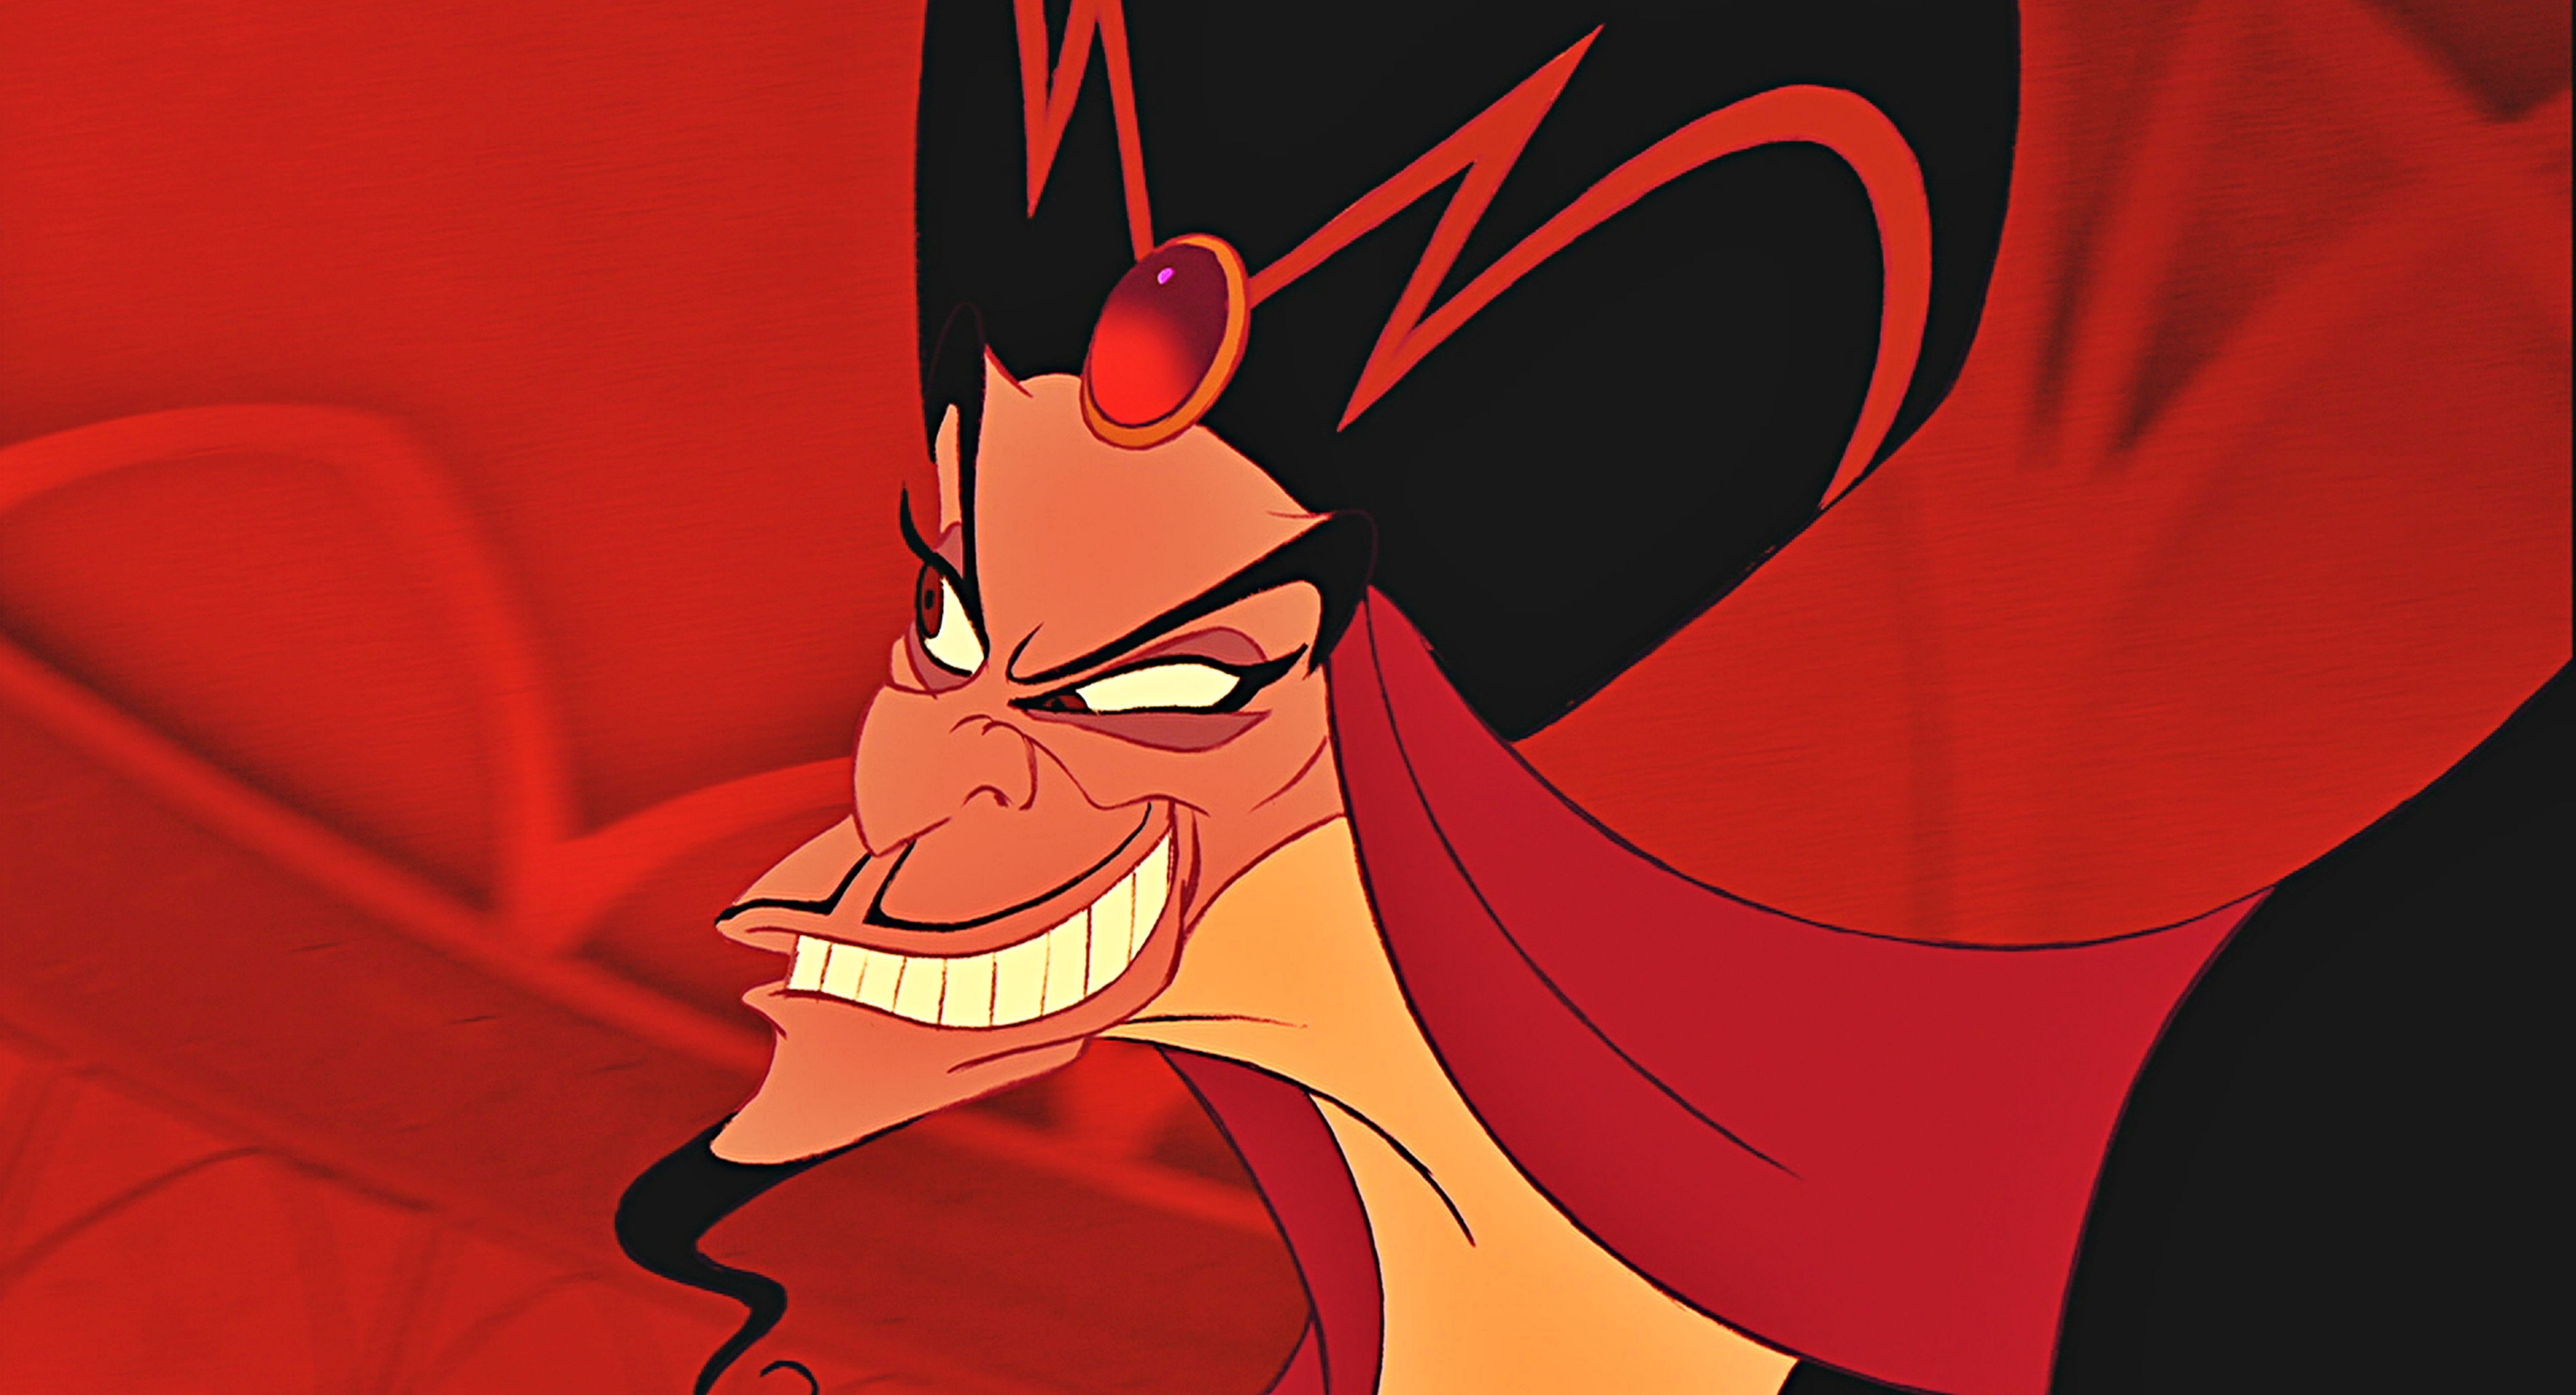 Jafar the Ambitious